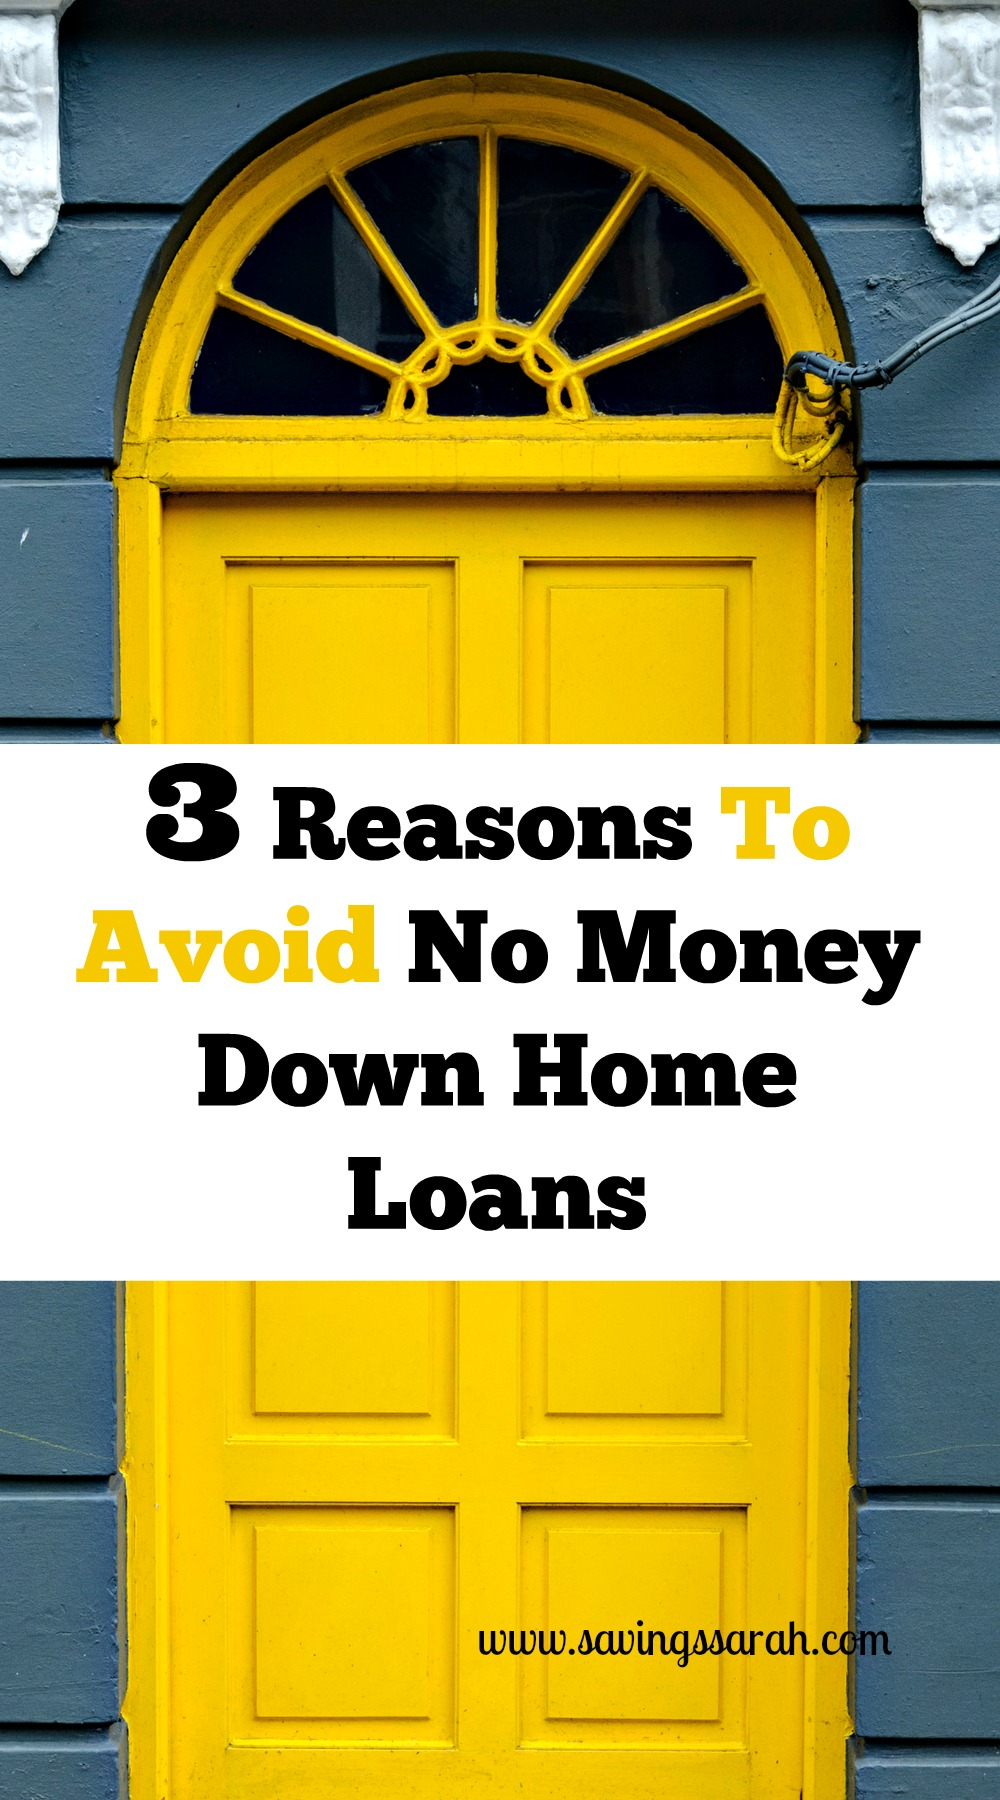 3 Reasons To Avoid No Money Down Home Loans - Earning and ...